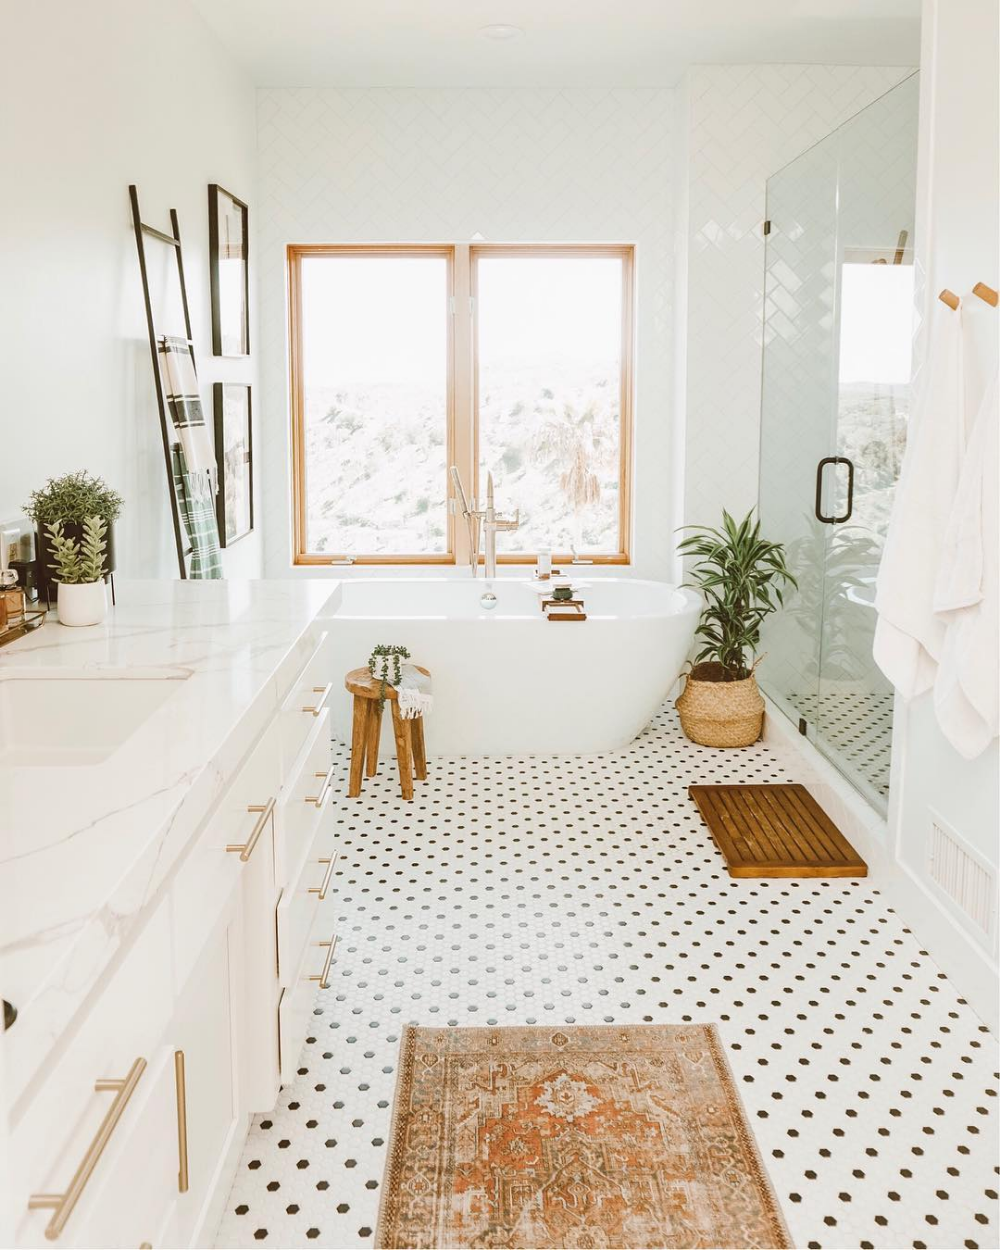 It S Been Awhile Since I Ve Shared A Before And After Photo So Here One Is It S A Little Different T Modern Bathroom Decor Cheap Home Decor Home Remodeling